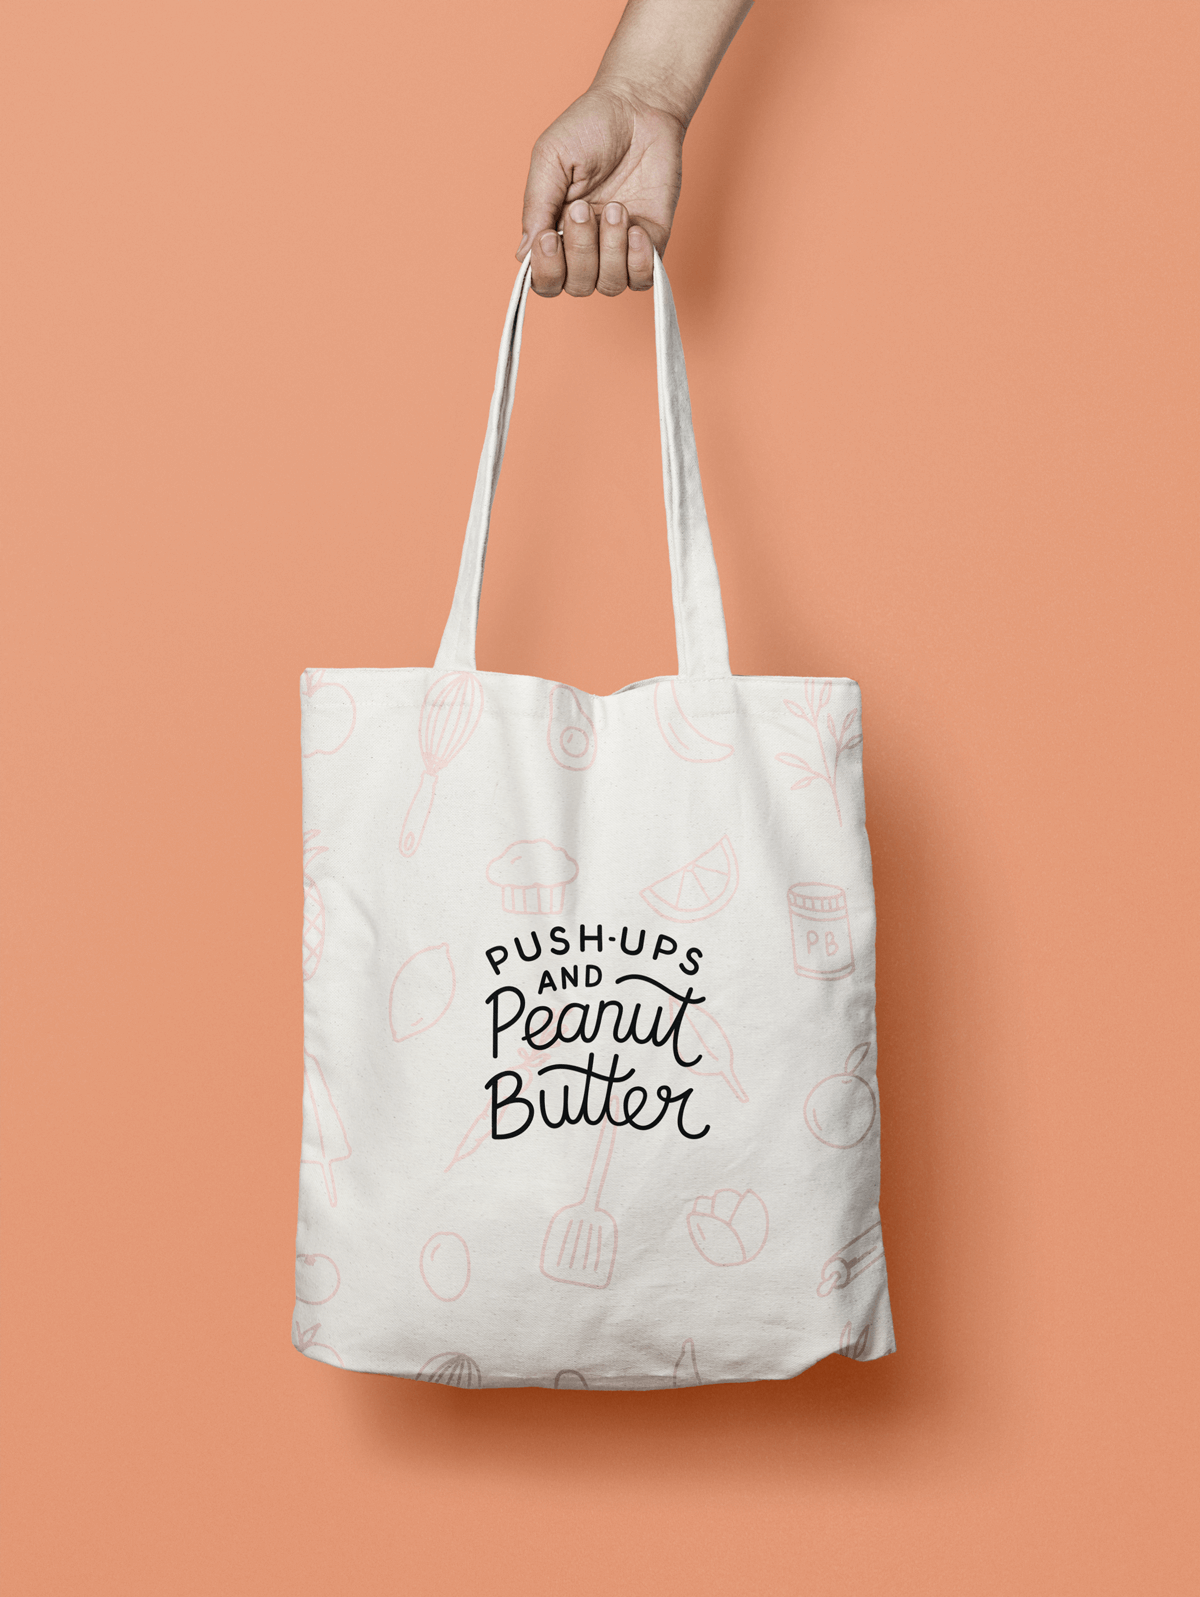 Push-ups and Peanut Butter tote bag design